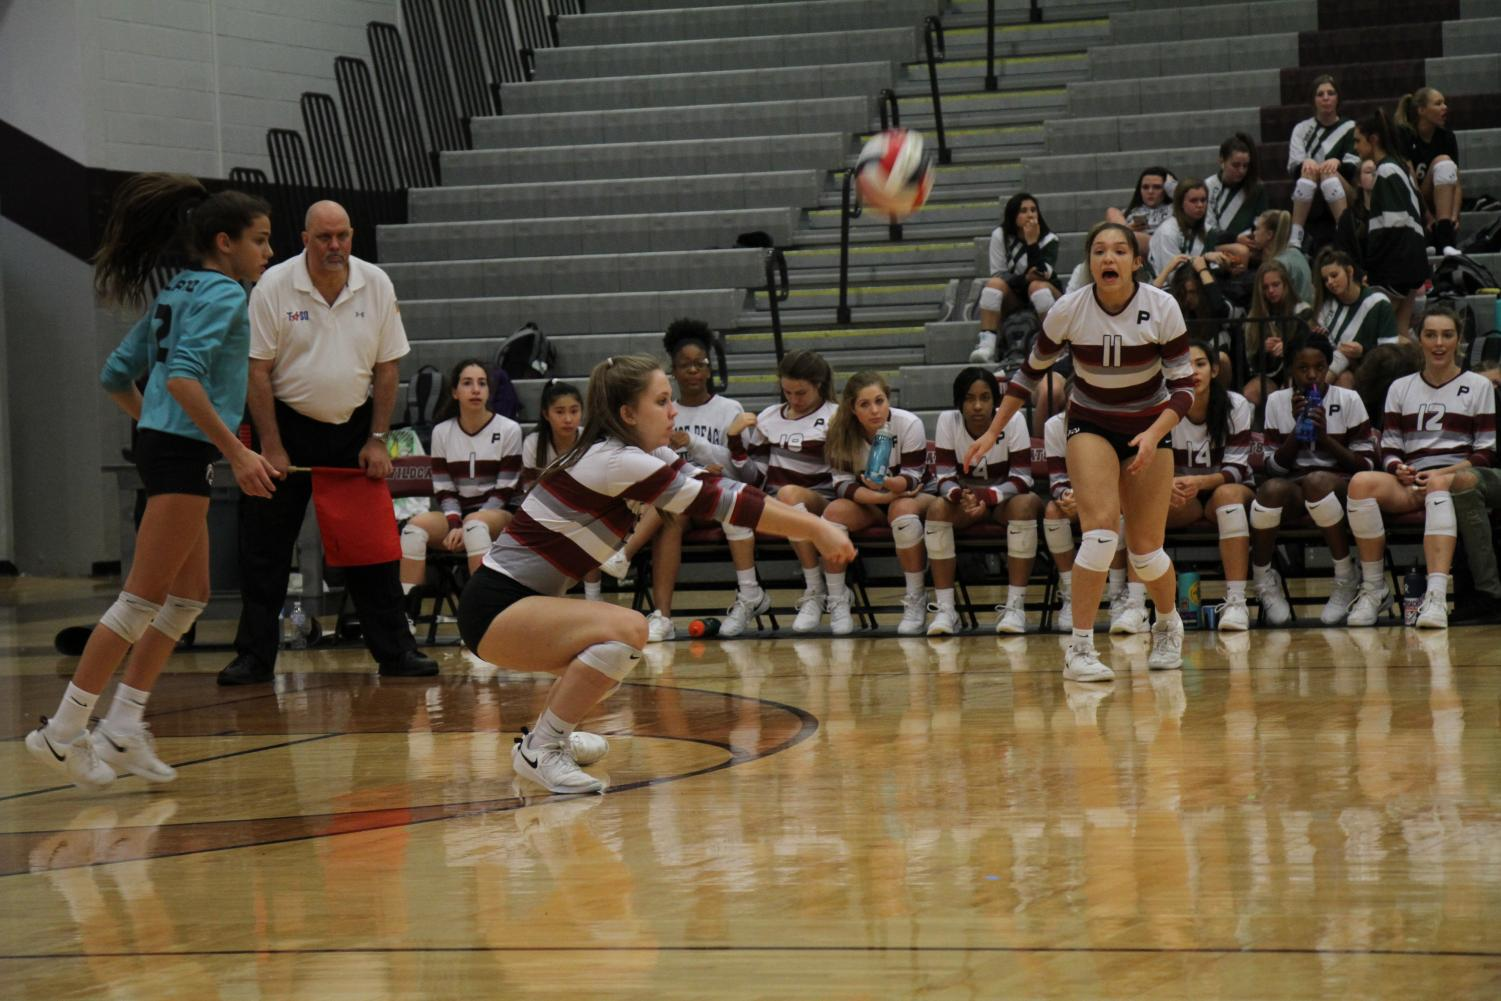 Naylani Feliciano (left) Grace Glasscock (middle) and Brooke Mchale (right) setting up a play during the game.